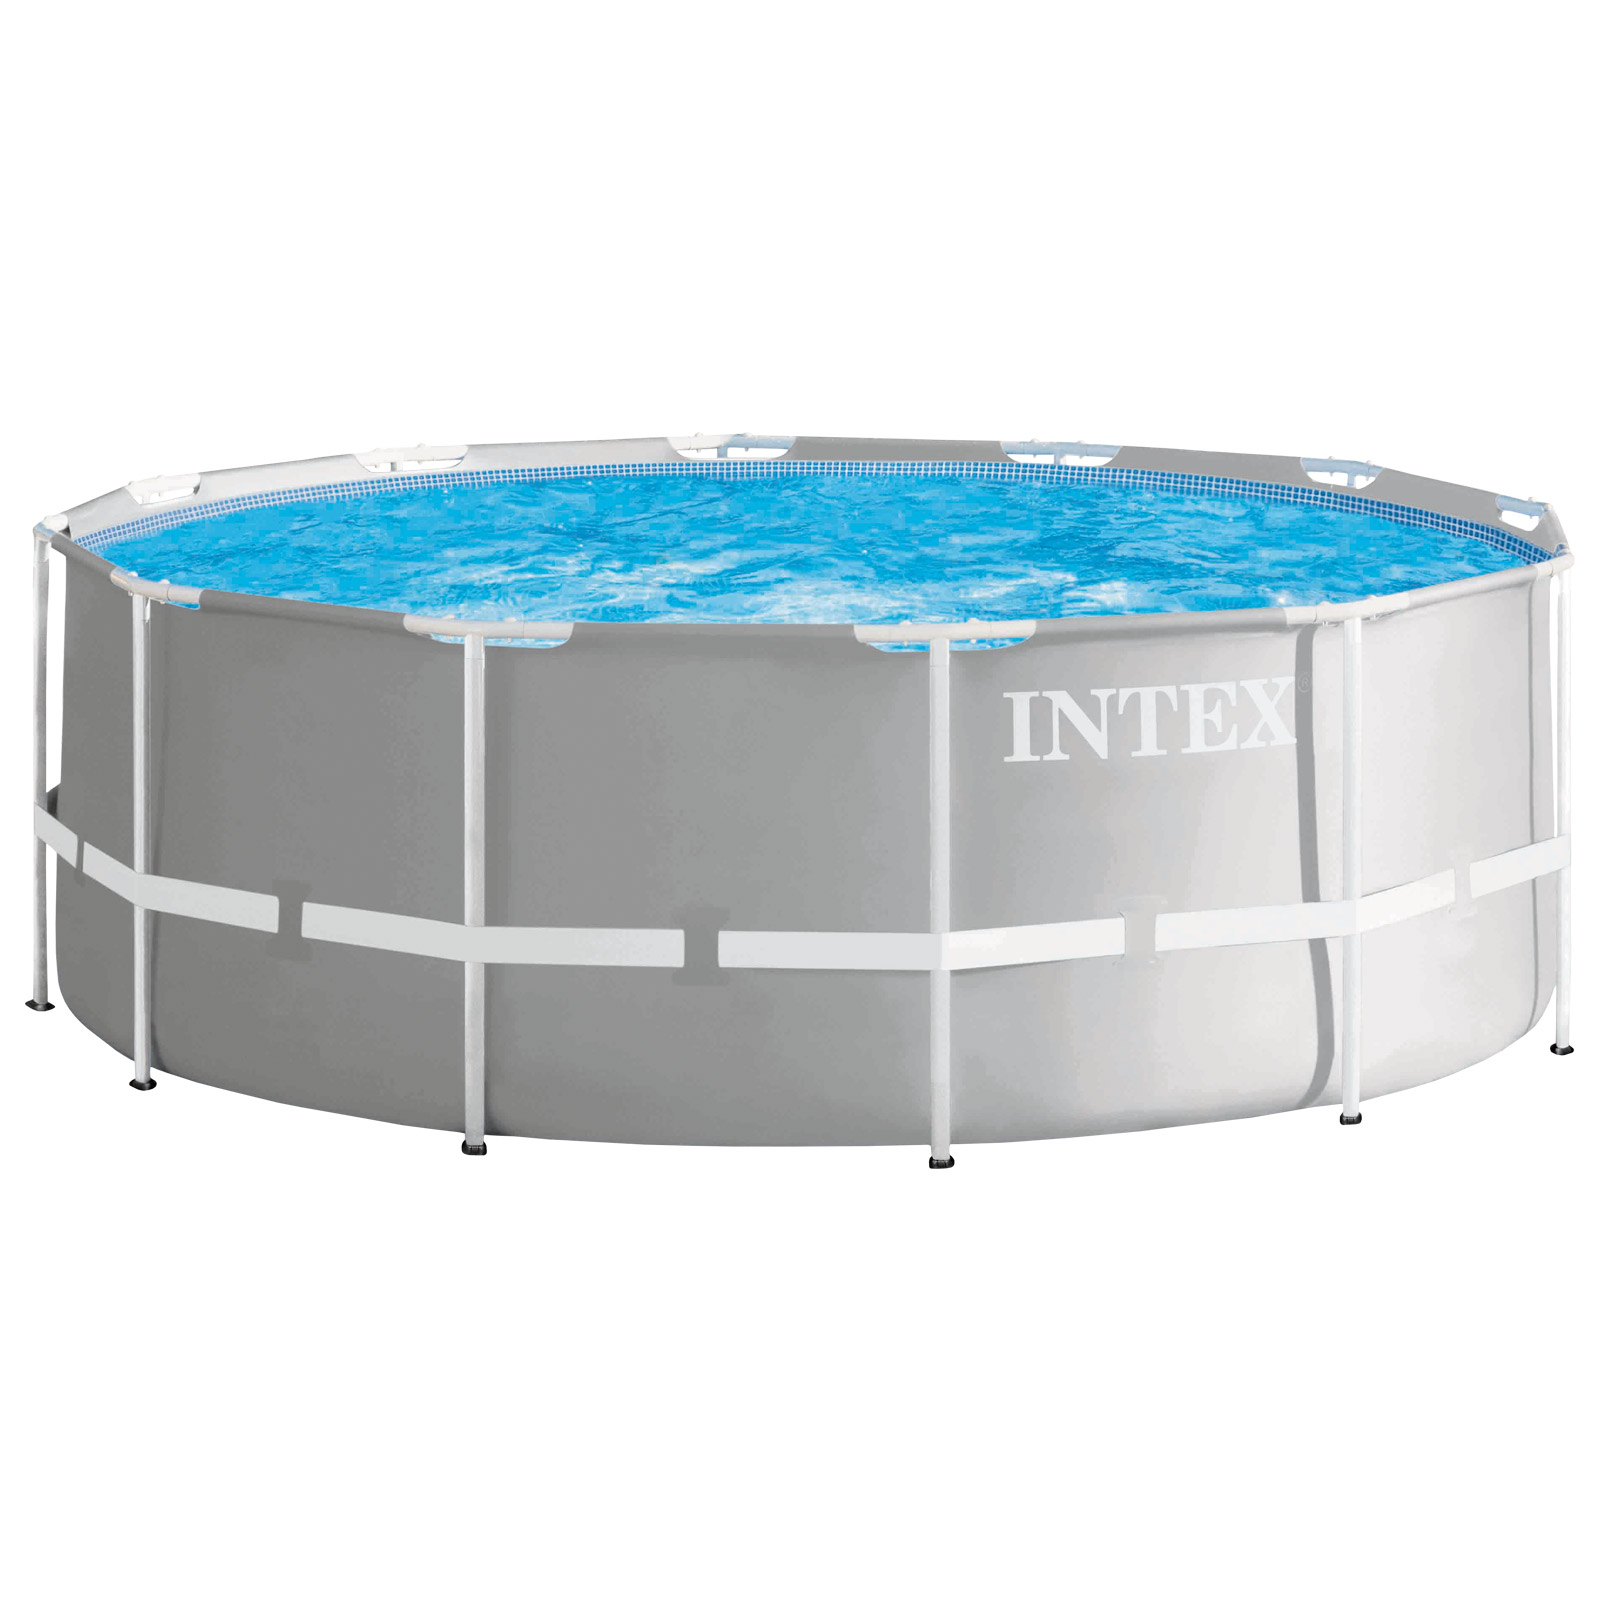 Intex Pool Komplettset Mit Sandfilteranlage Intex Swimming Pool Frame 366x122 Cm Mit Sandfilter